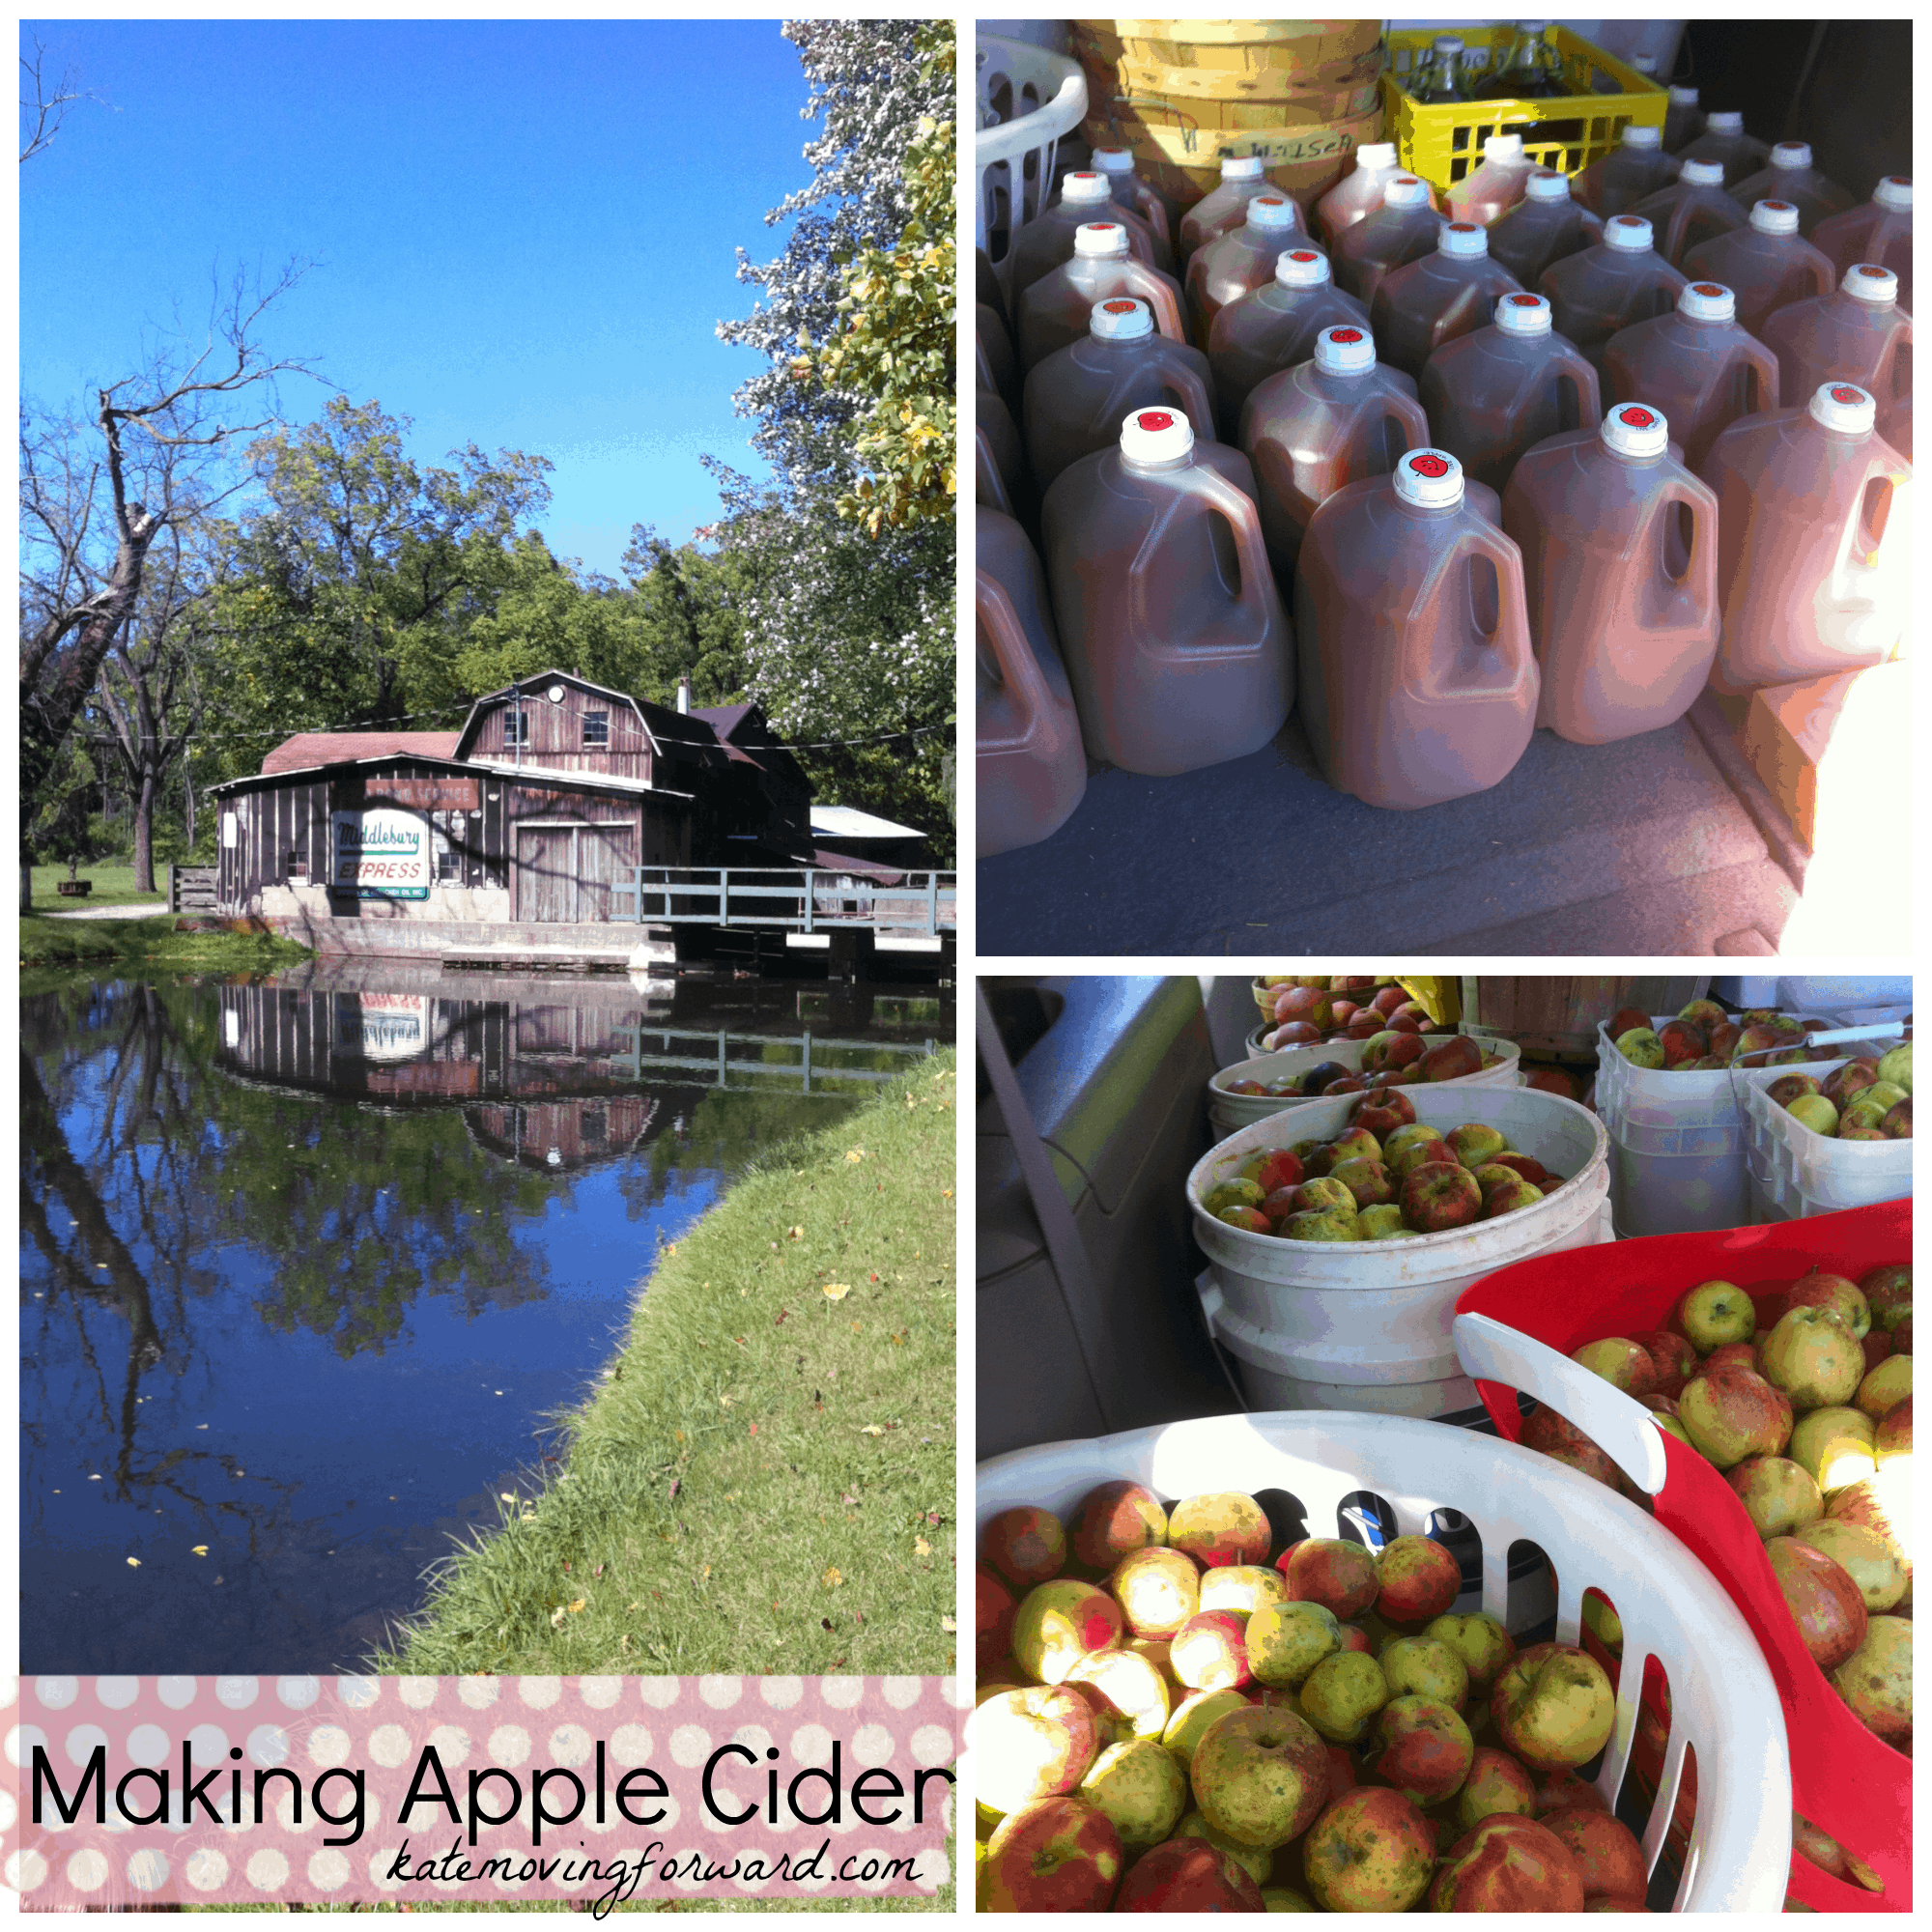 Making Apple Cider--a fun family activity in the fall